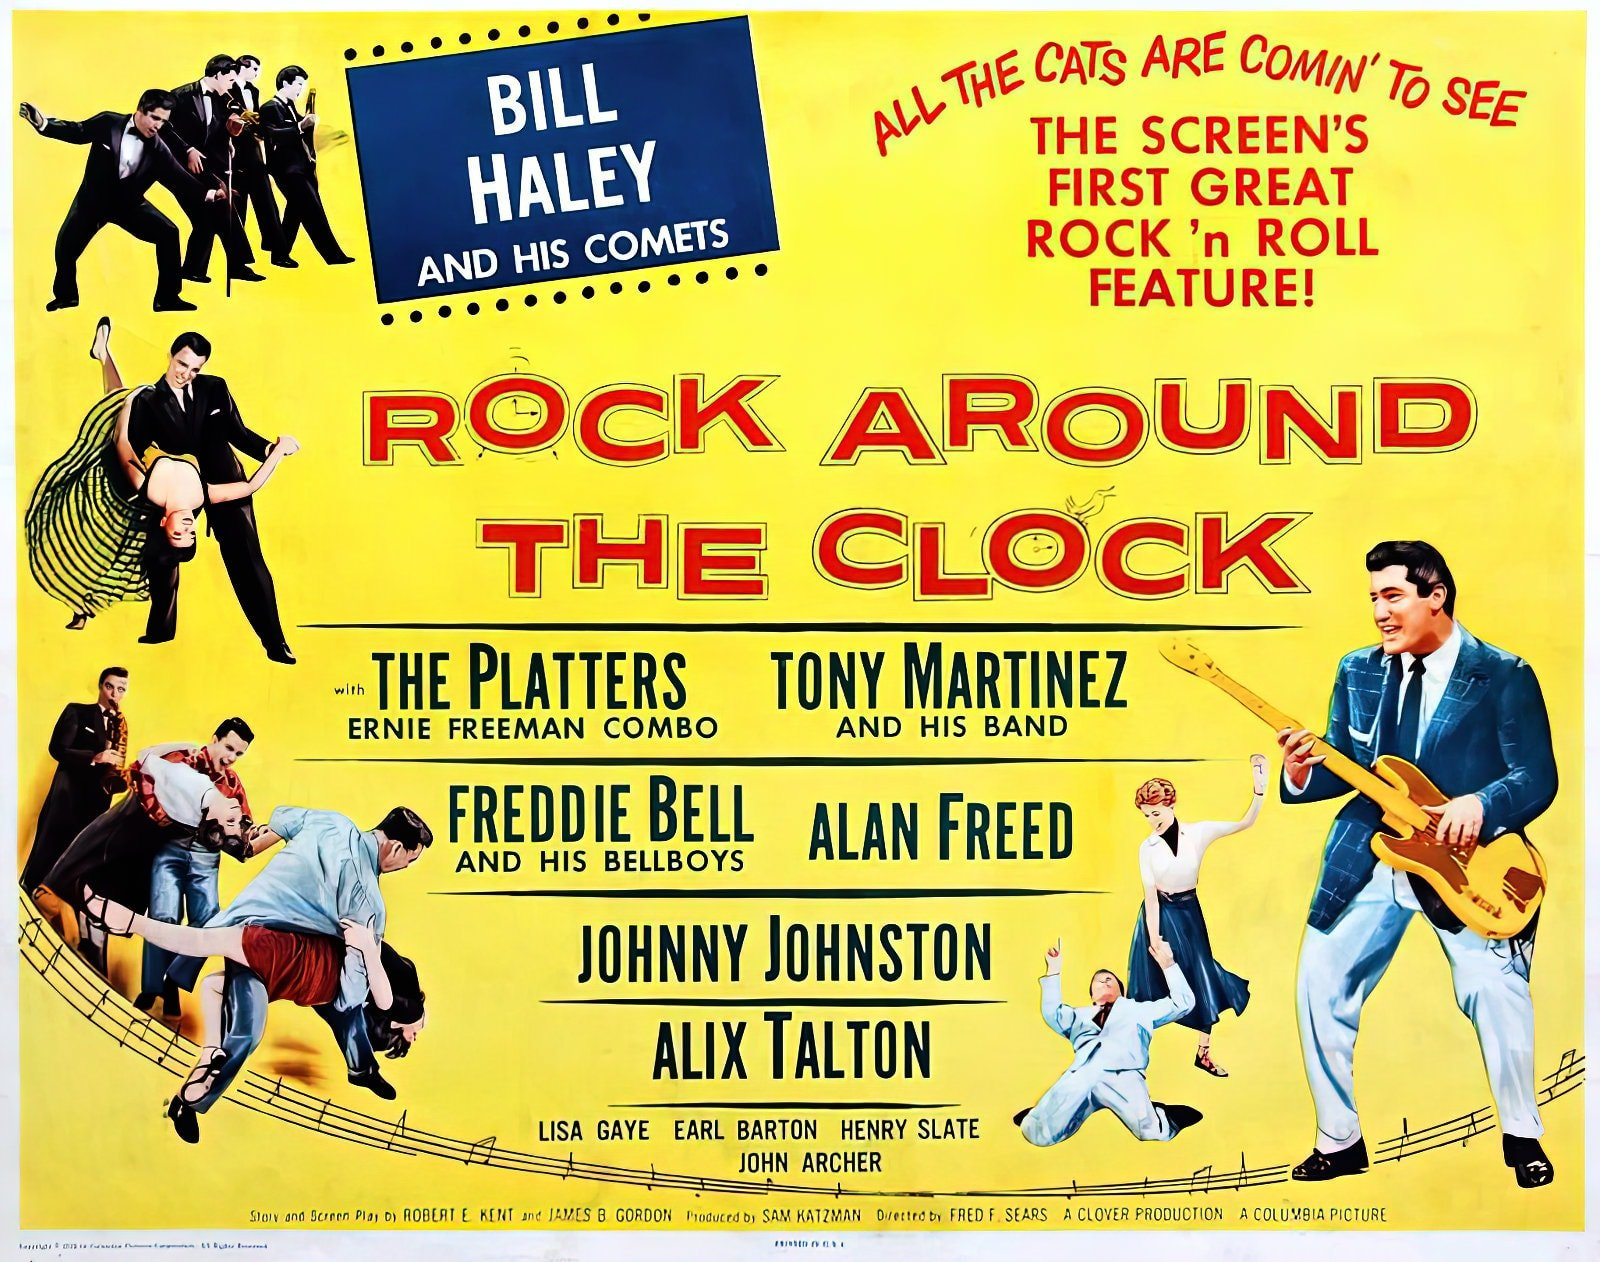 Rock Around the Clock starring Bill Haley & His Comets